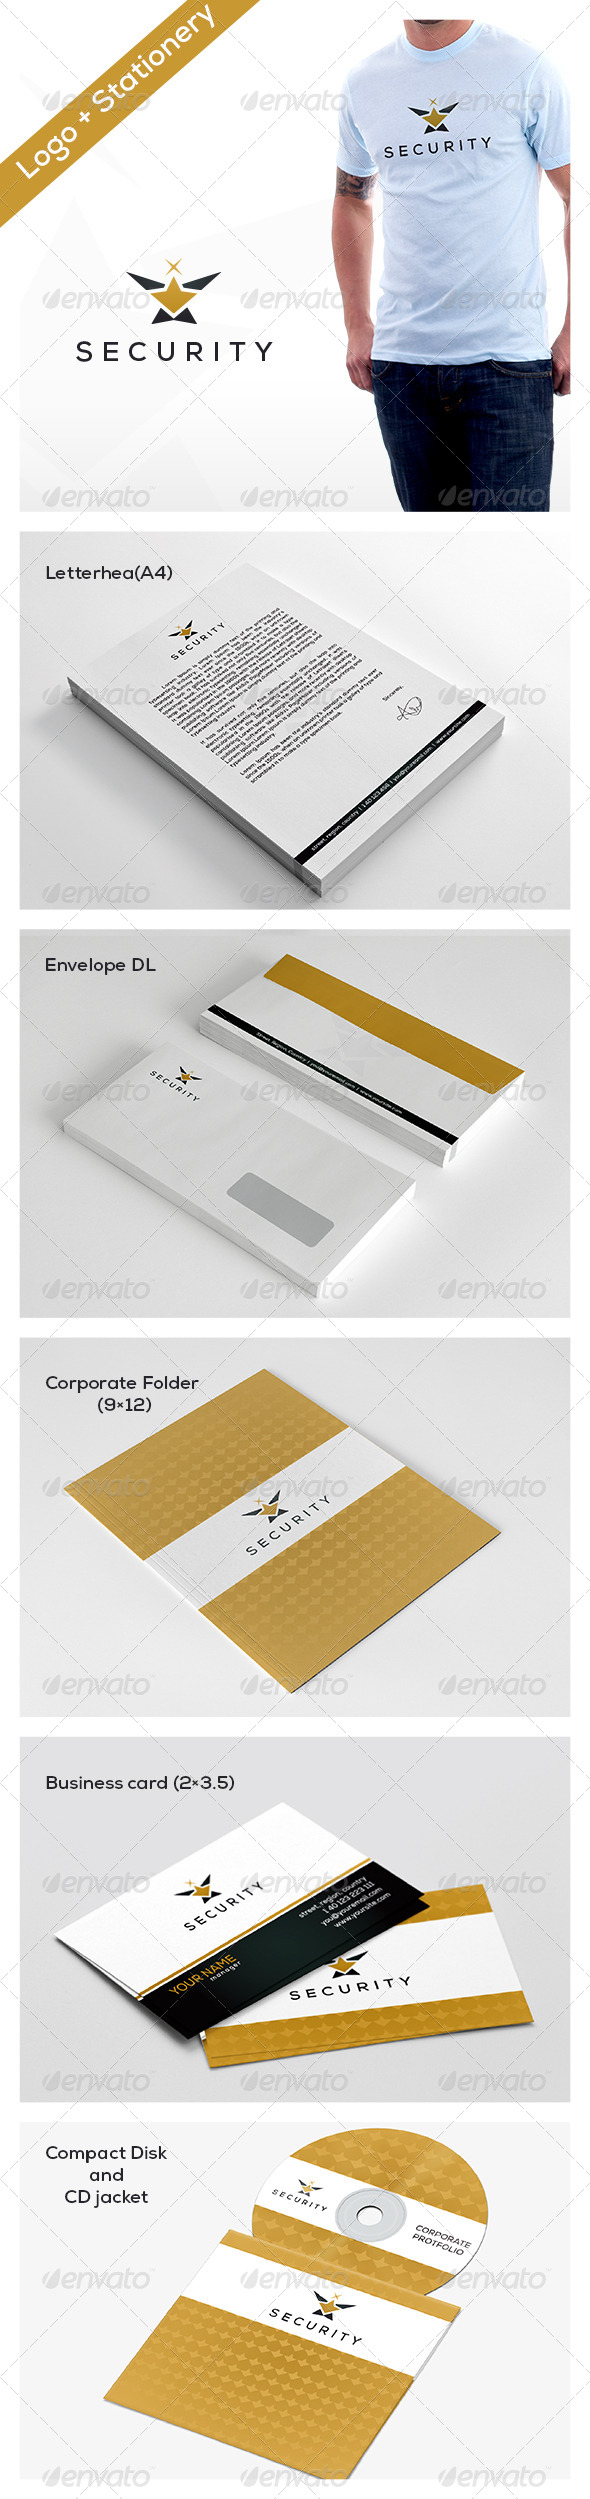 GraphicRiver Security Stationery 5285838